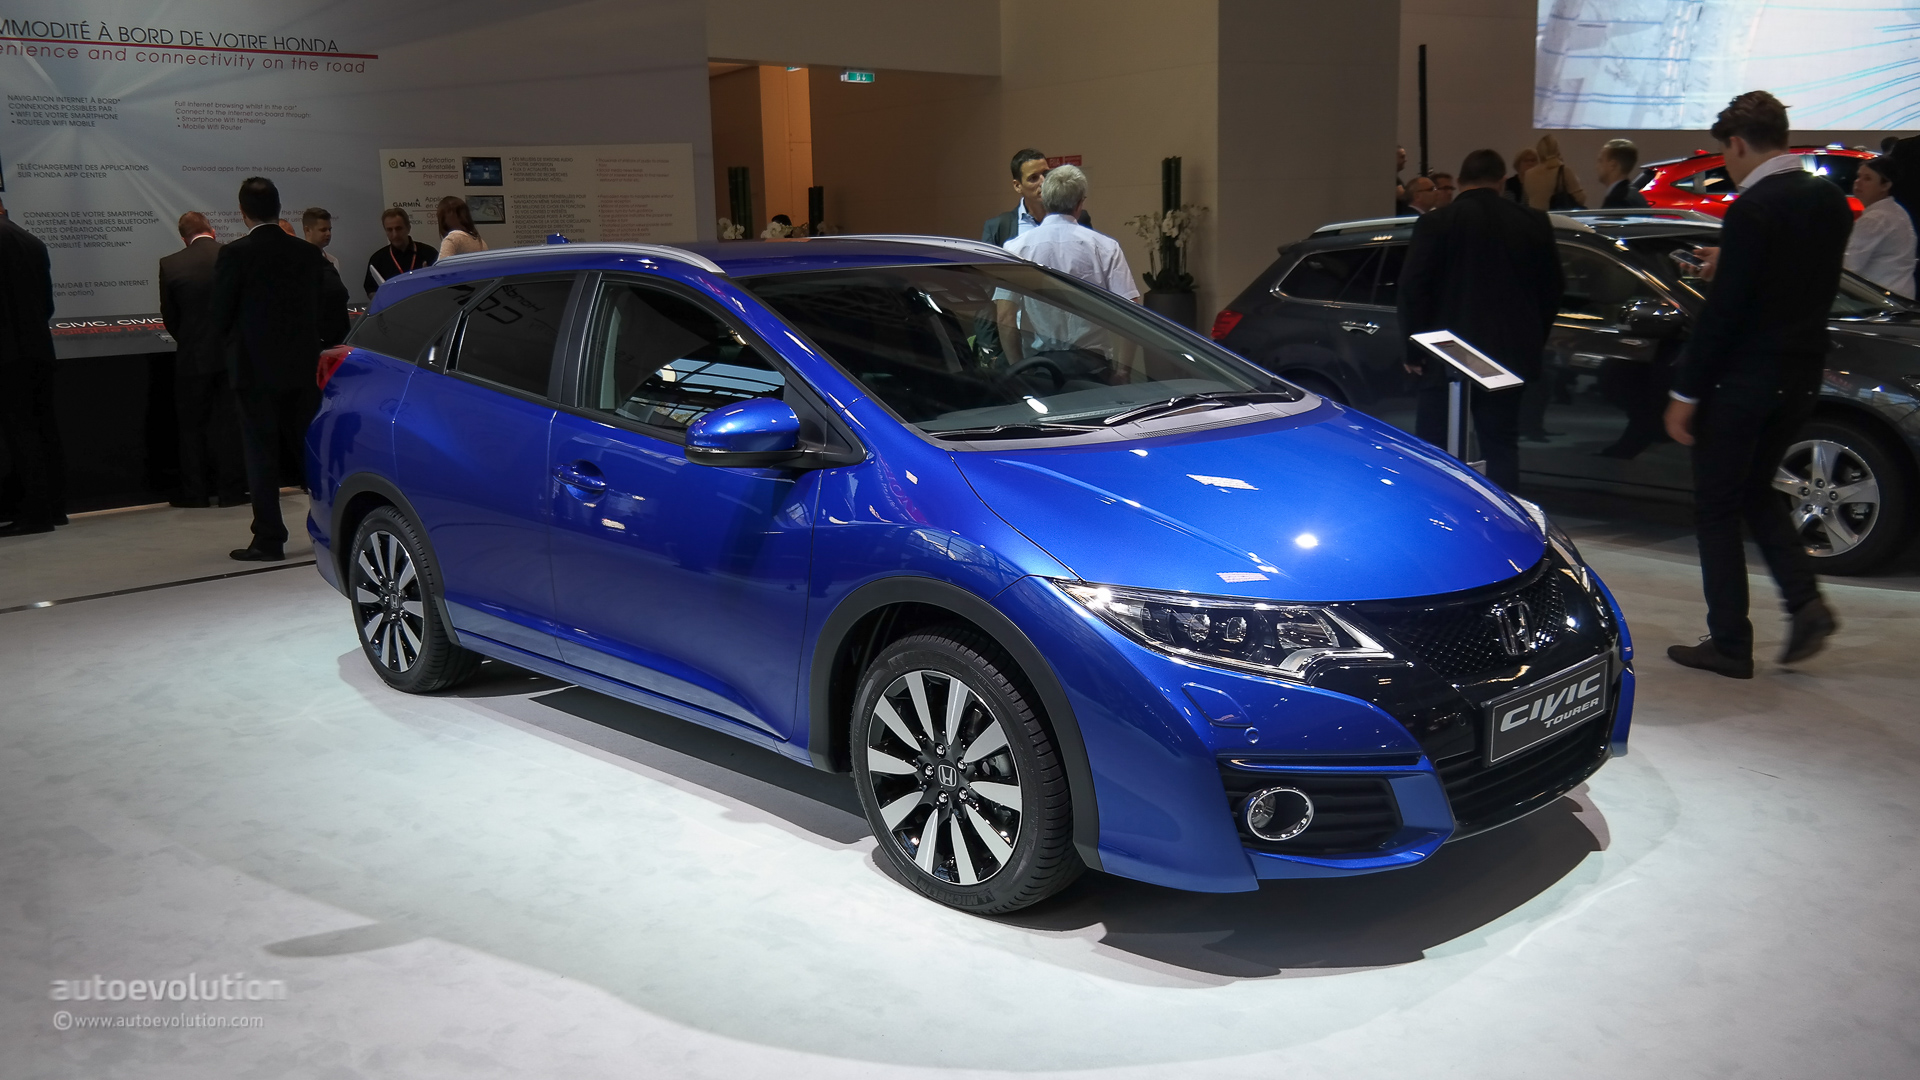 new honda civic tourer and sport guises unveiled in full at paris live photos autoevolution. Black Bedroom Furniture Sets. Home Design Ideas